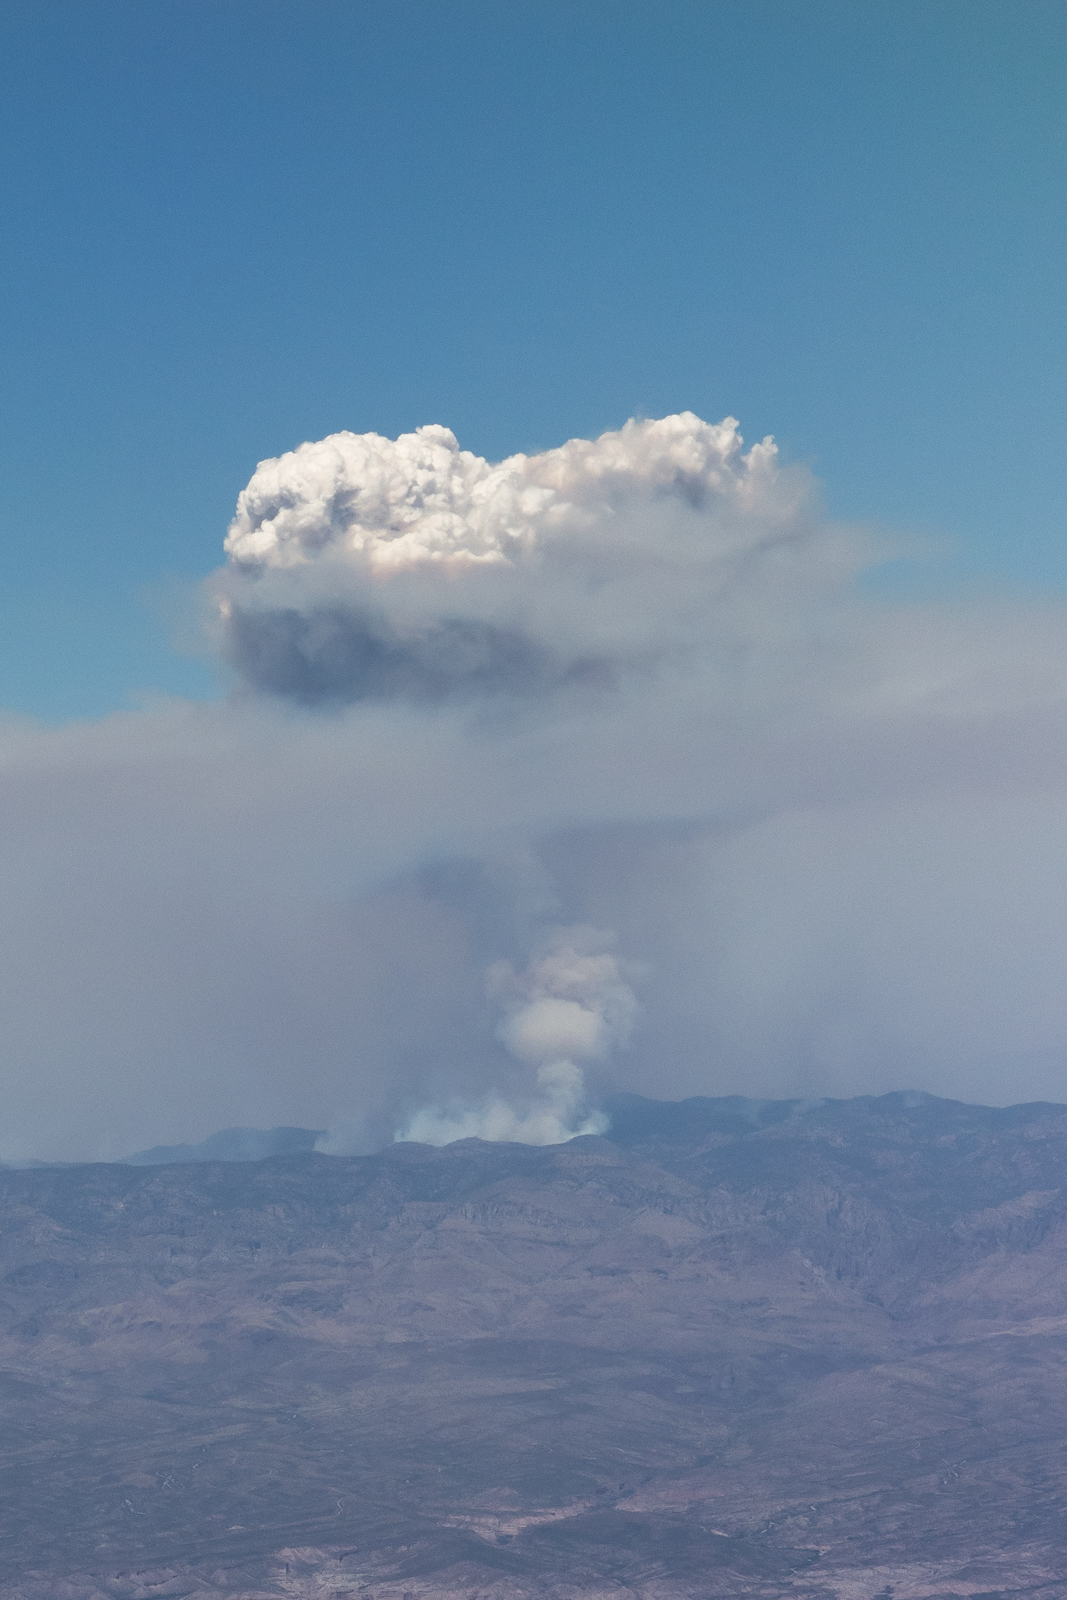 1406 Oak Fire in the Galiuro Mountains from the Kellogg Trail